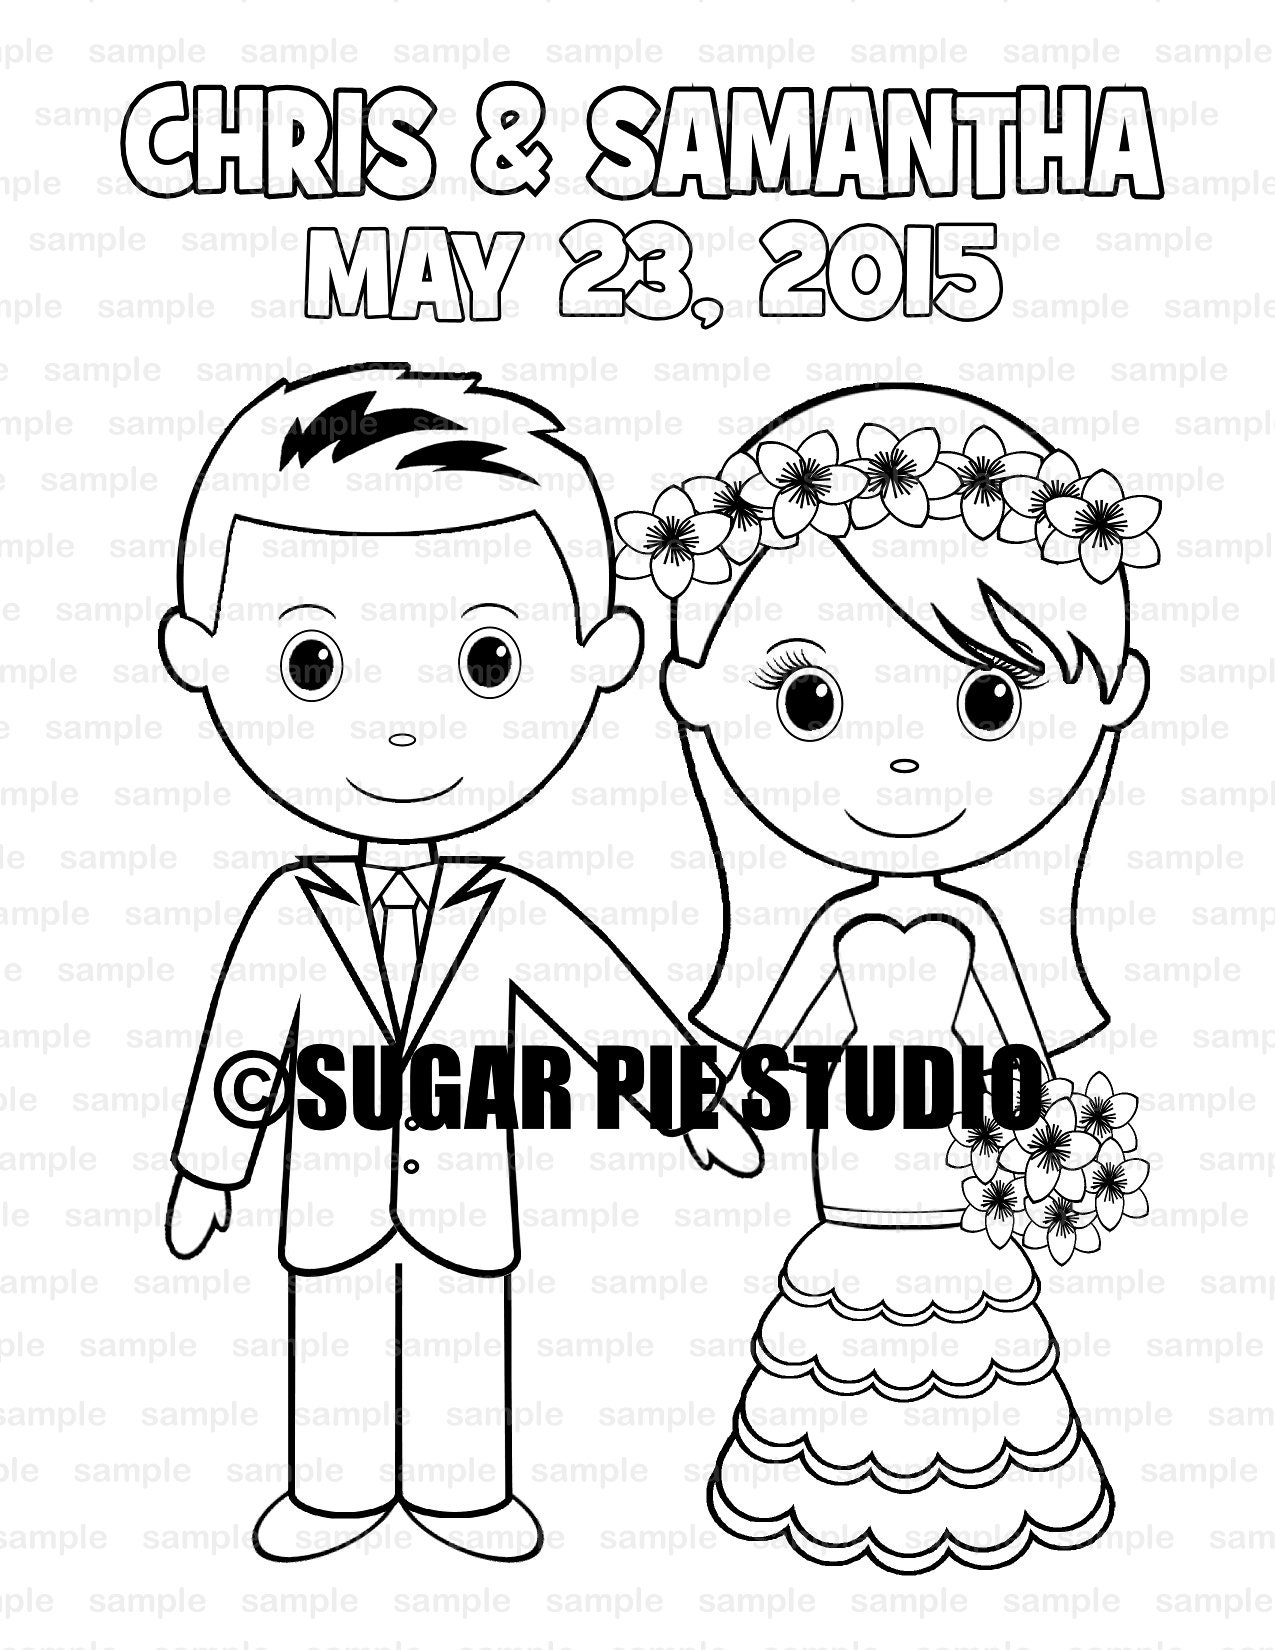 Wedding coloring book activity Favor Kids 8.5 x 11 PDF or JPEG TEMPLATE